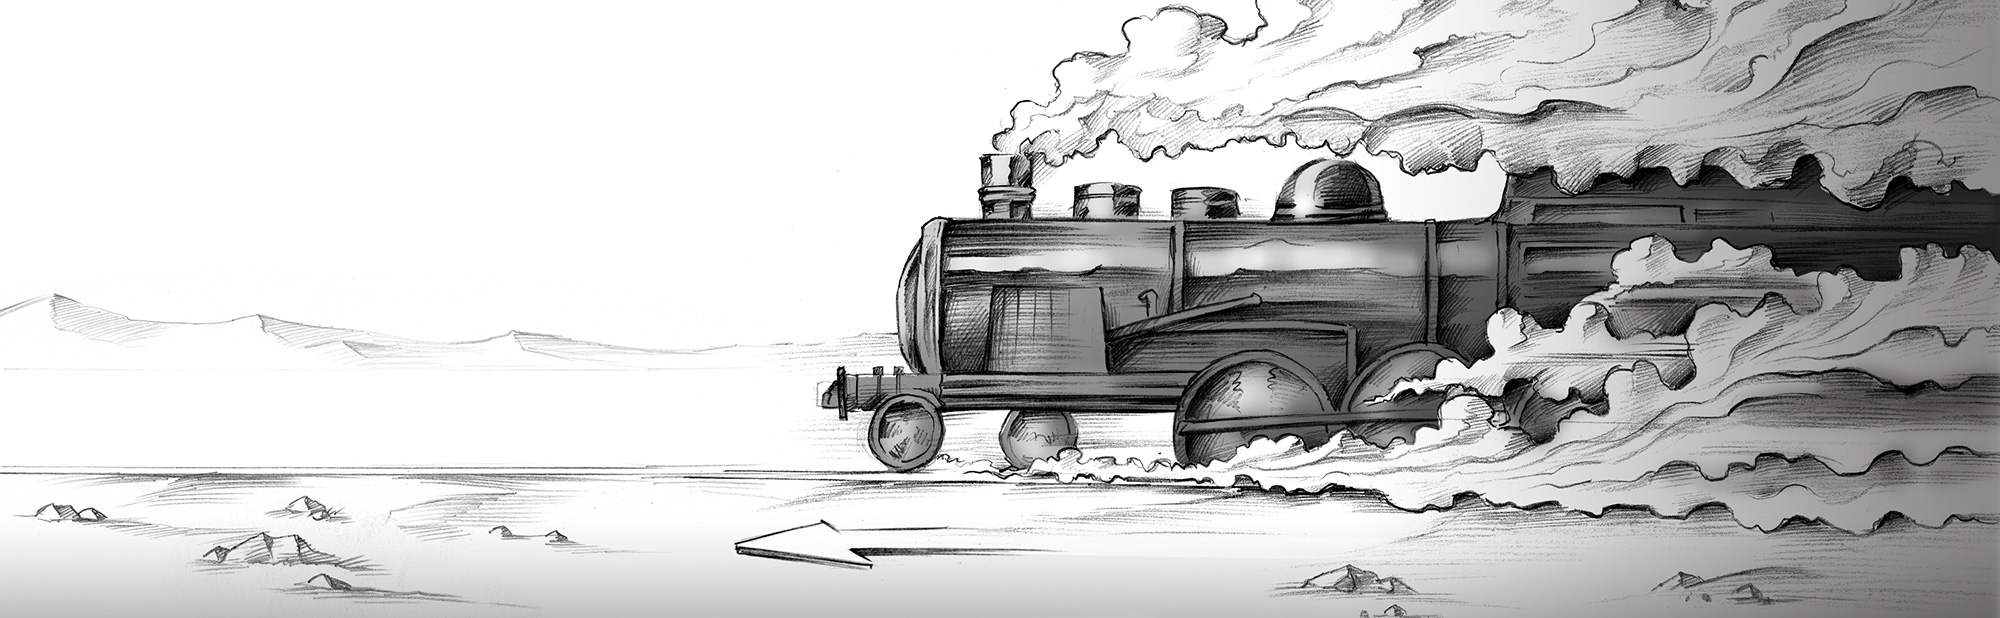 Locomotive_2_Web